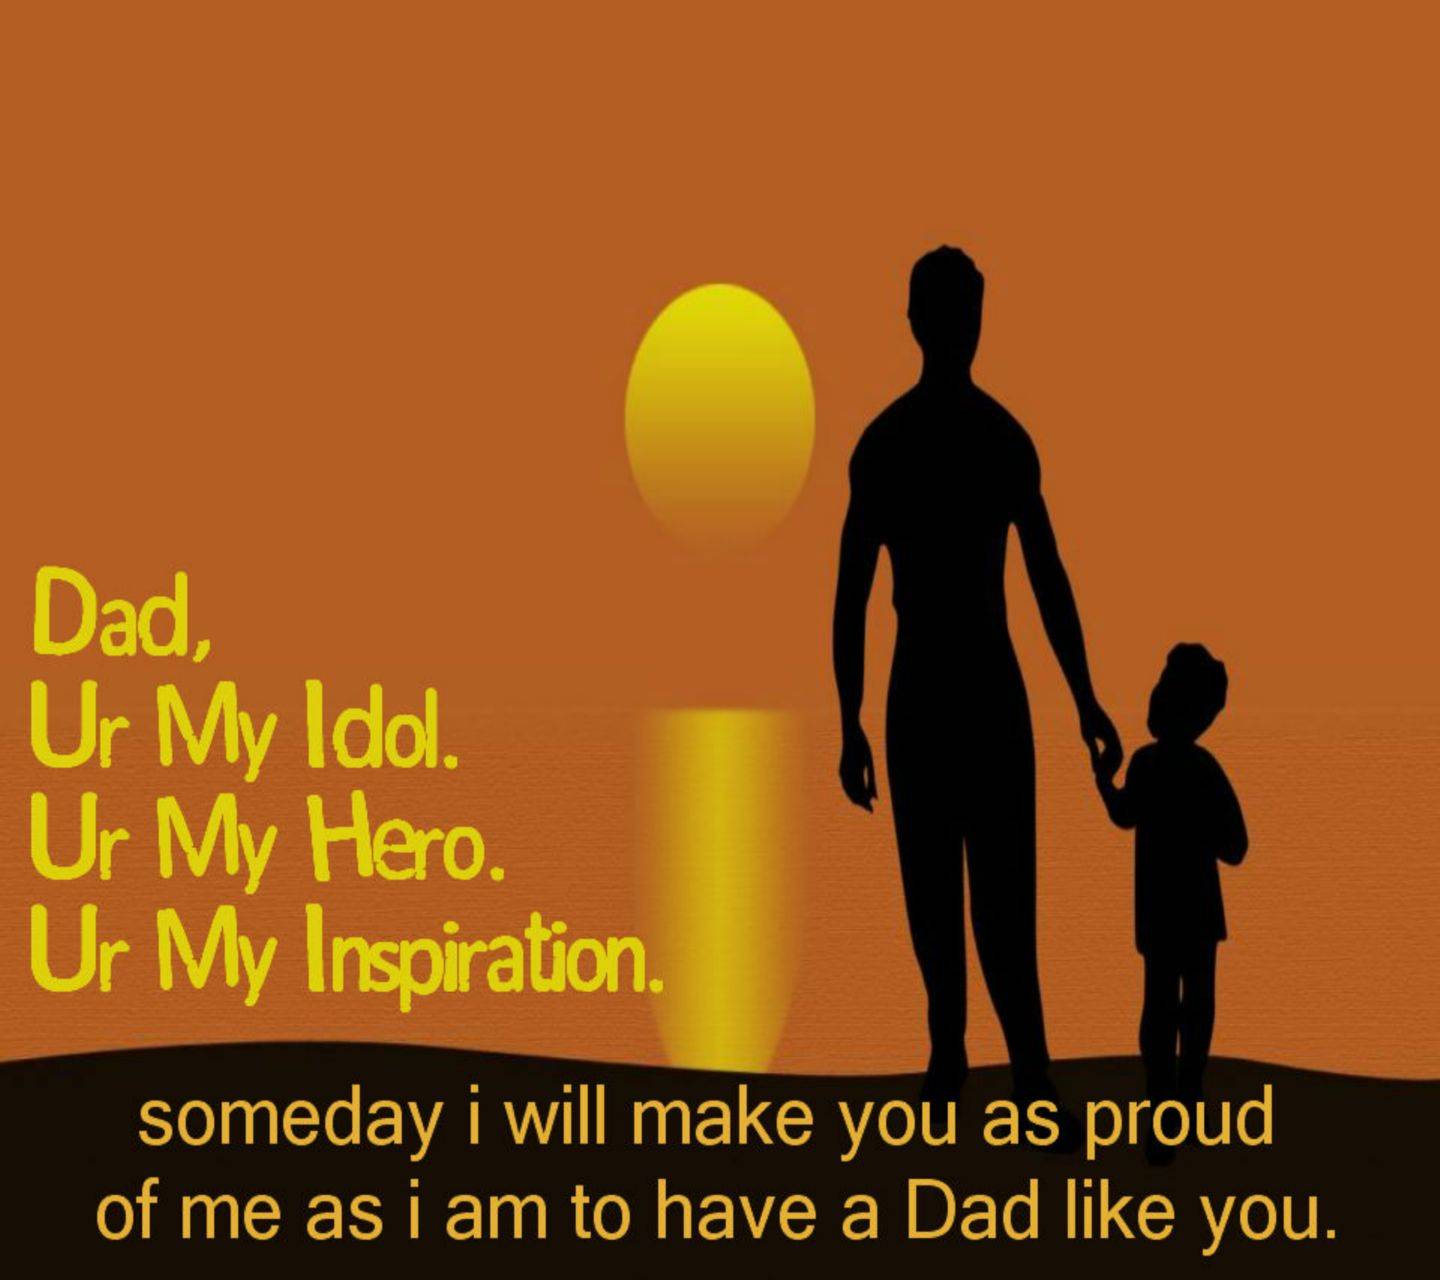 dad wallpapers - wallpaper cave